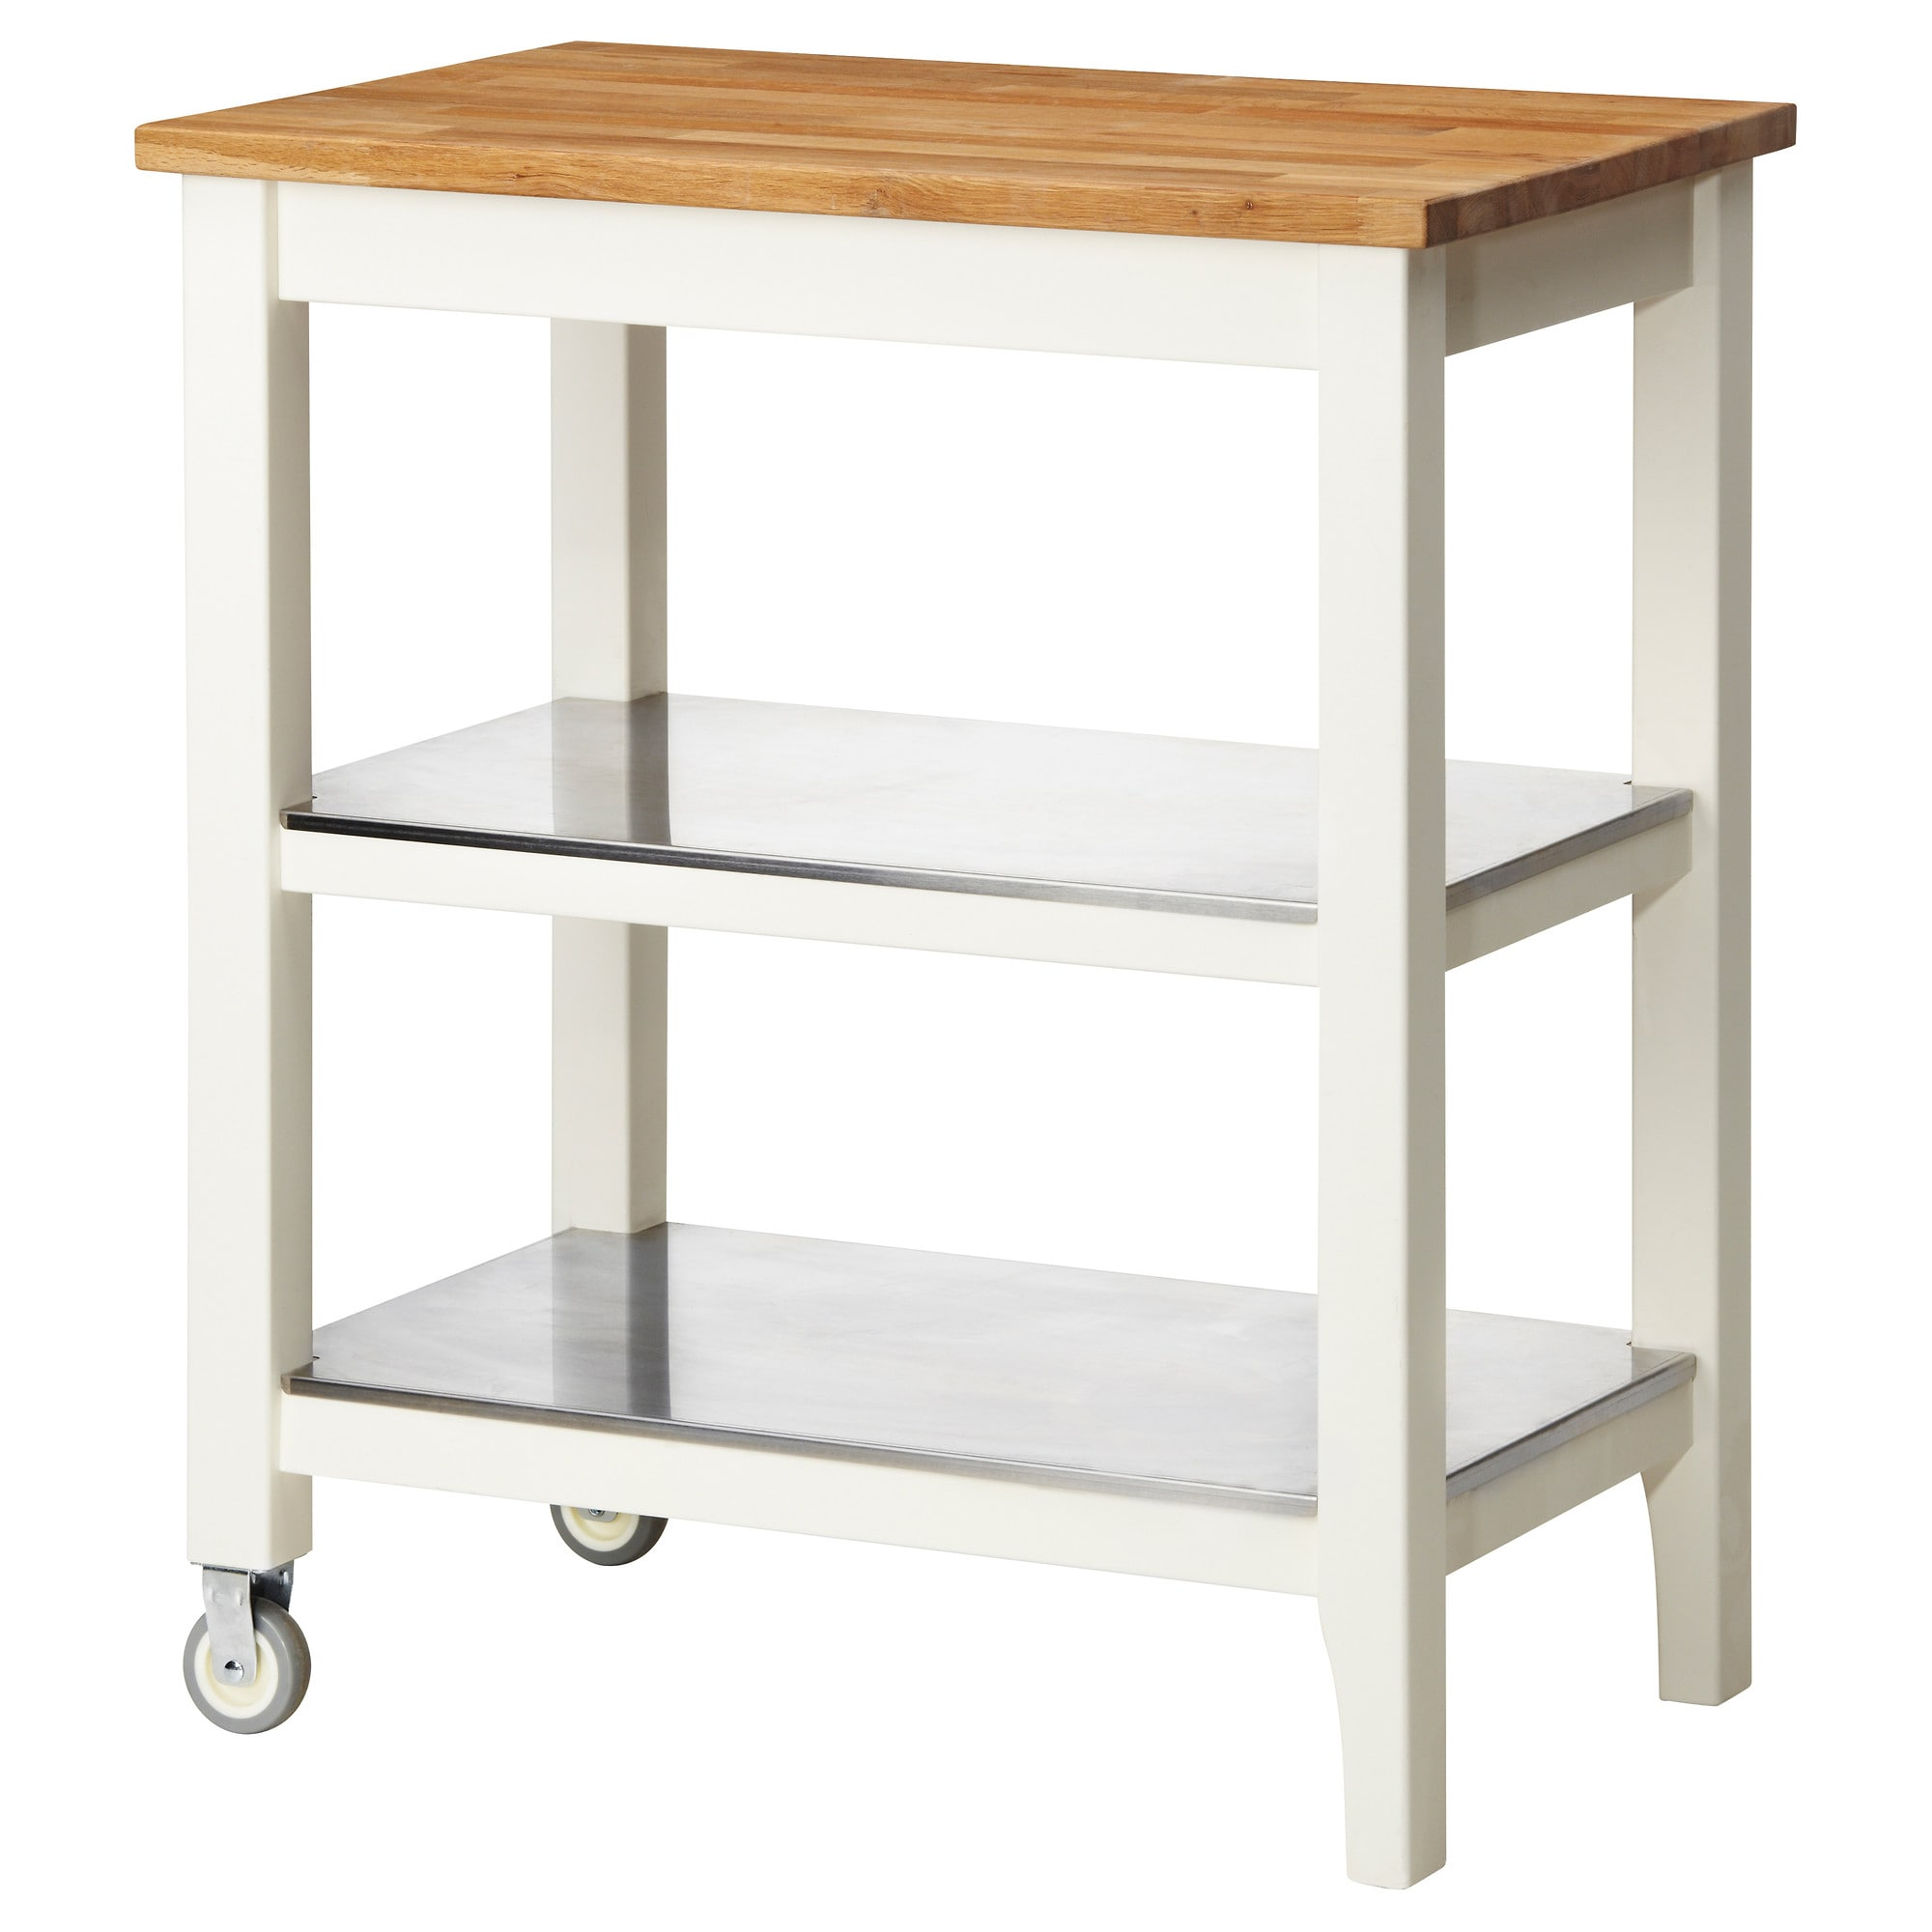 Stenstorp Kitchen Cart Ikea House Stuff In 2019 Ikea Kitchen